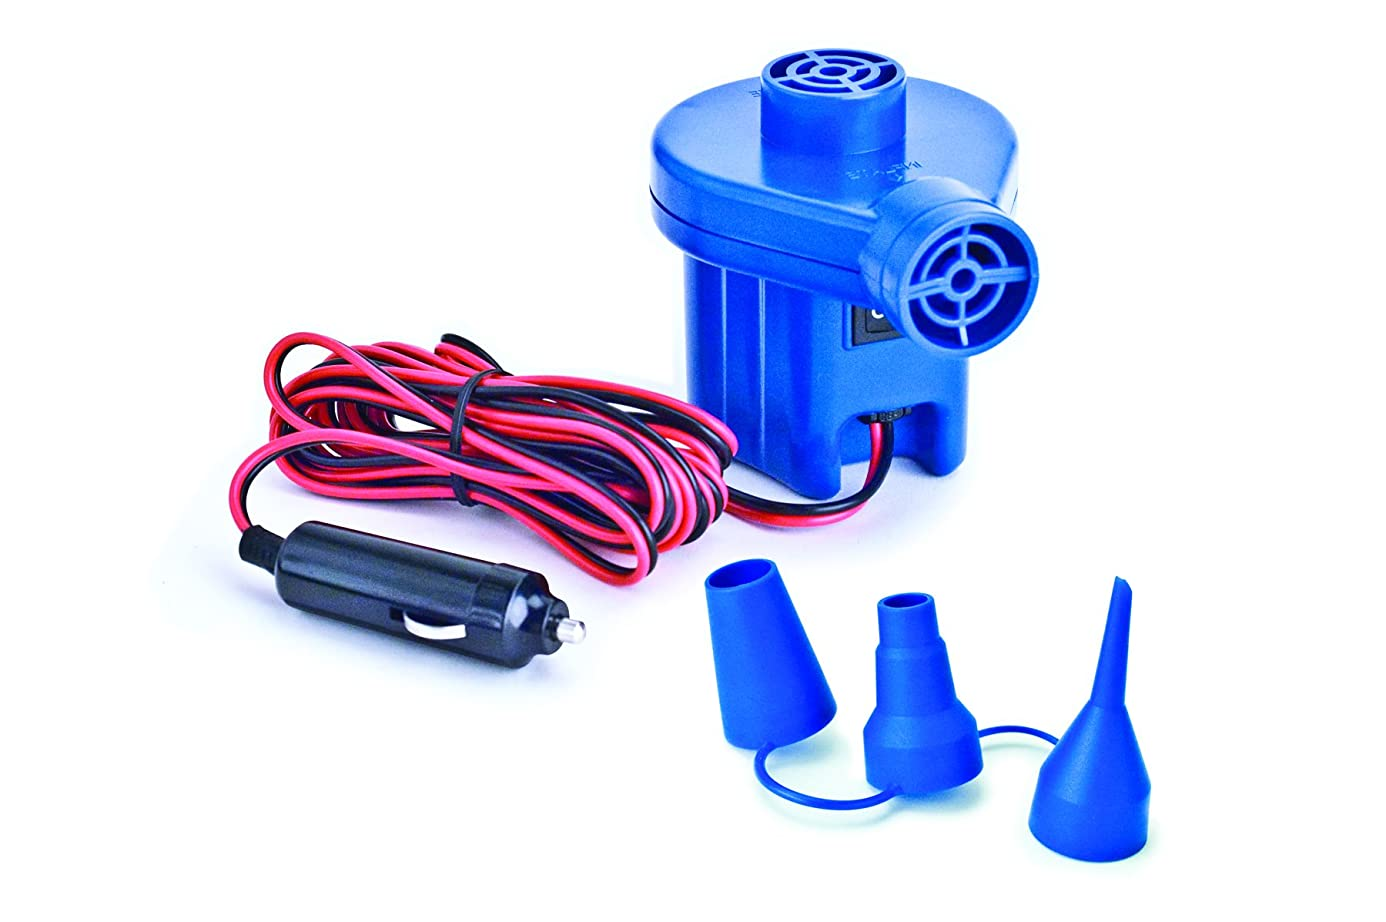 Swimline  12V Accessory Outlet Electric Pump for Inflatables